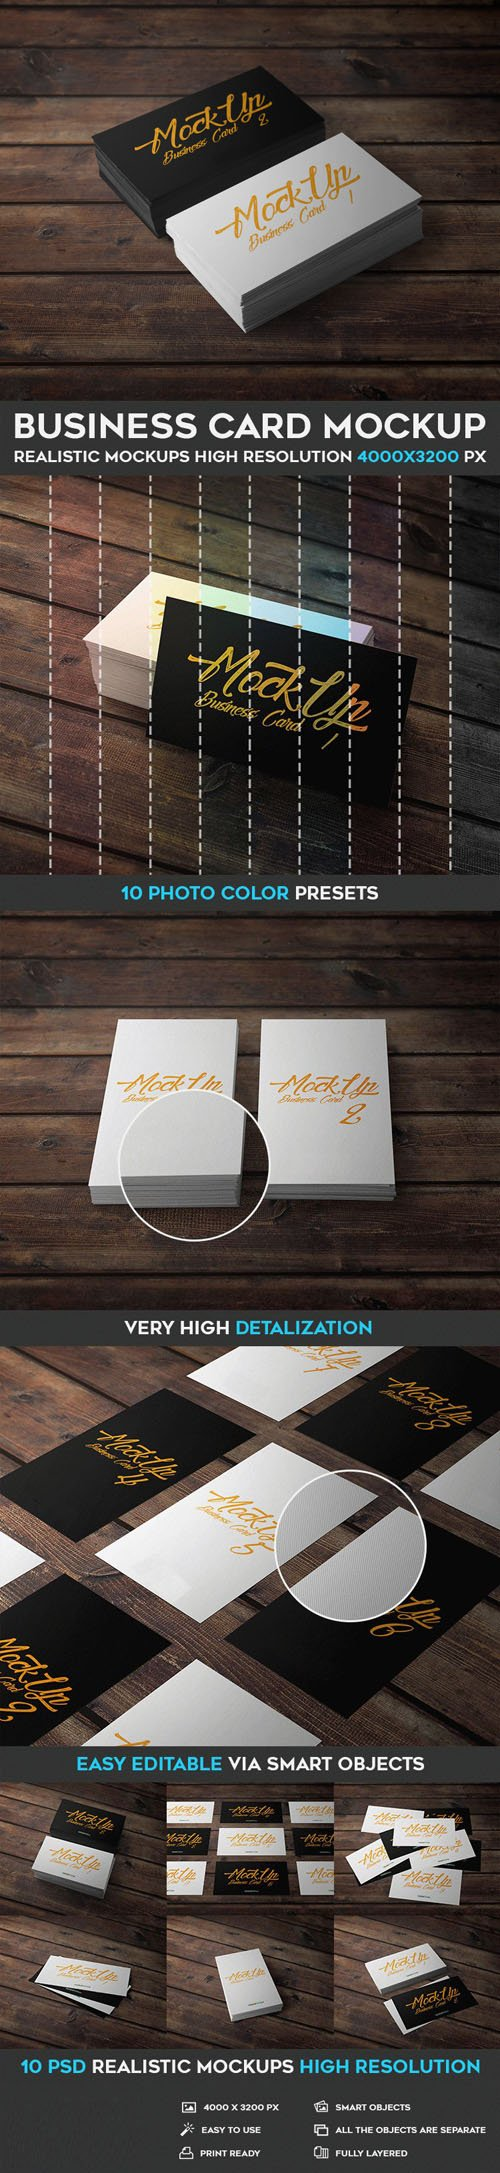 10 Business Card Realistic PSD Mockups